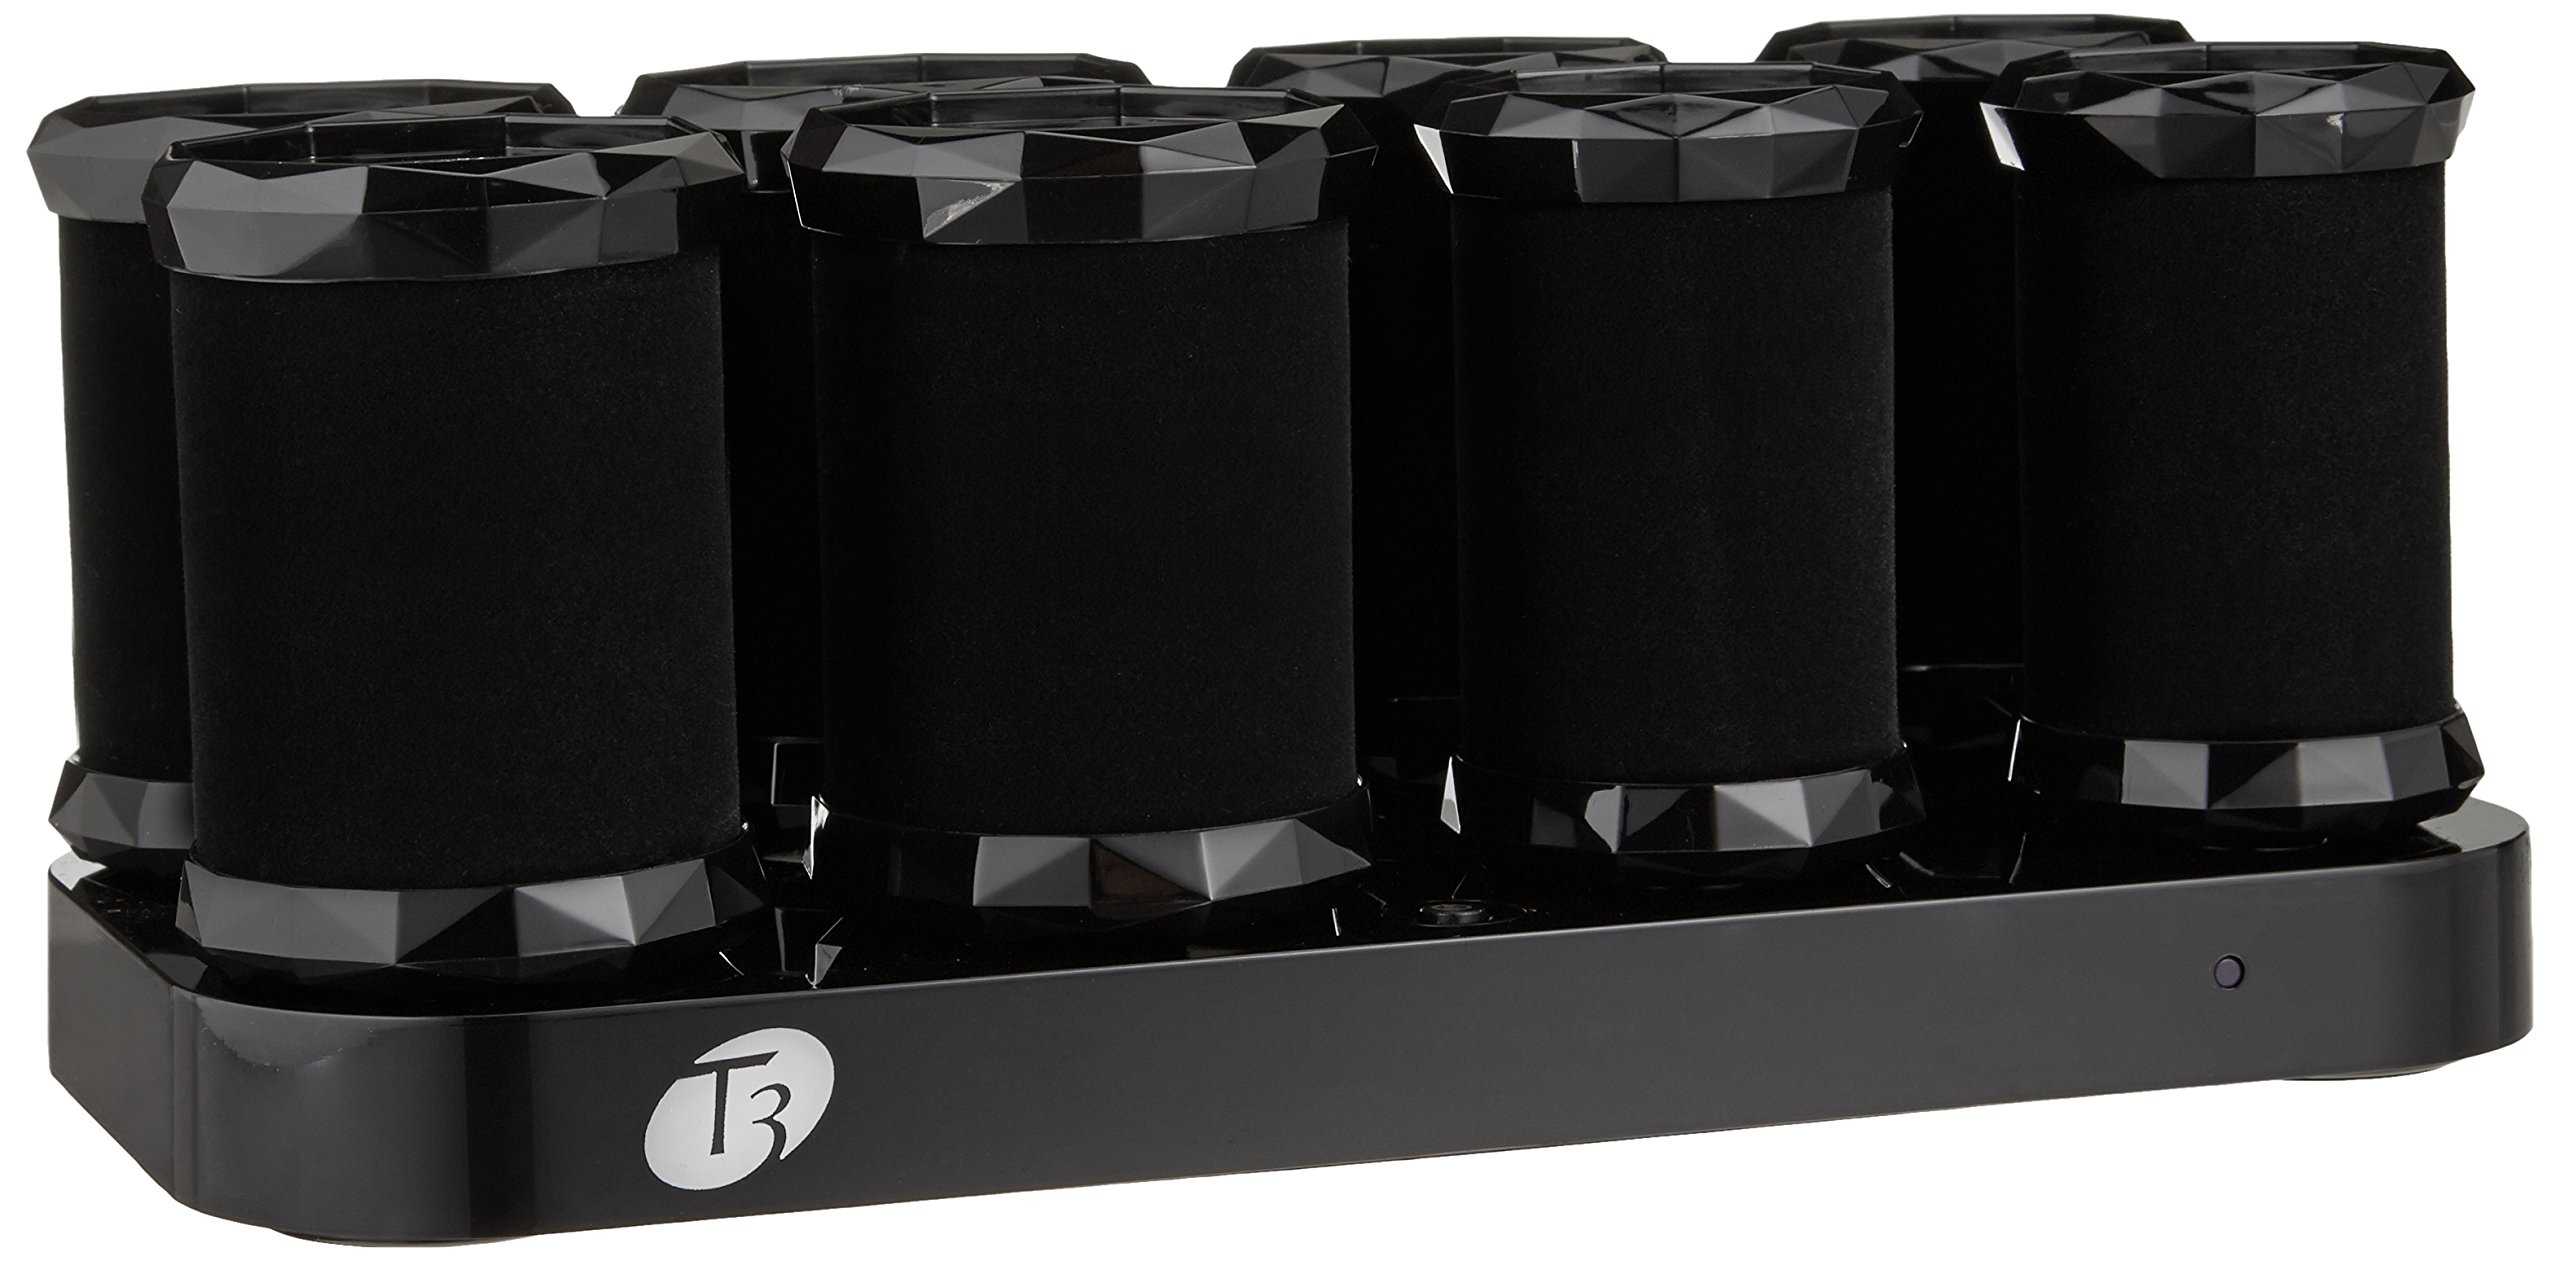 T3 Voluminous Hot Rollers by T3 Micro